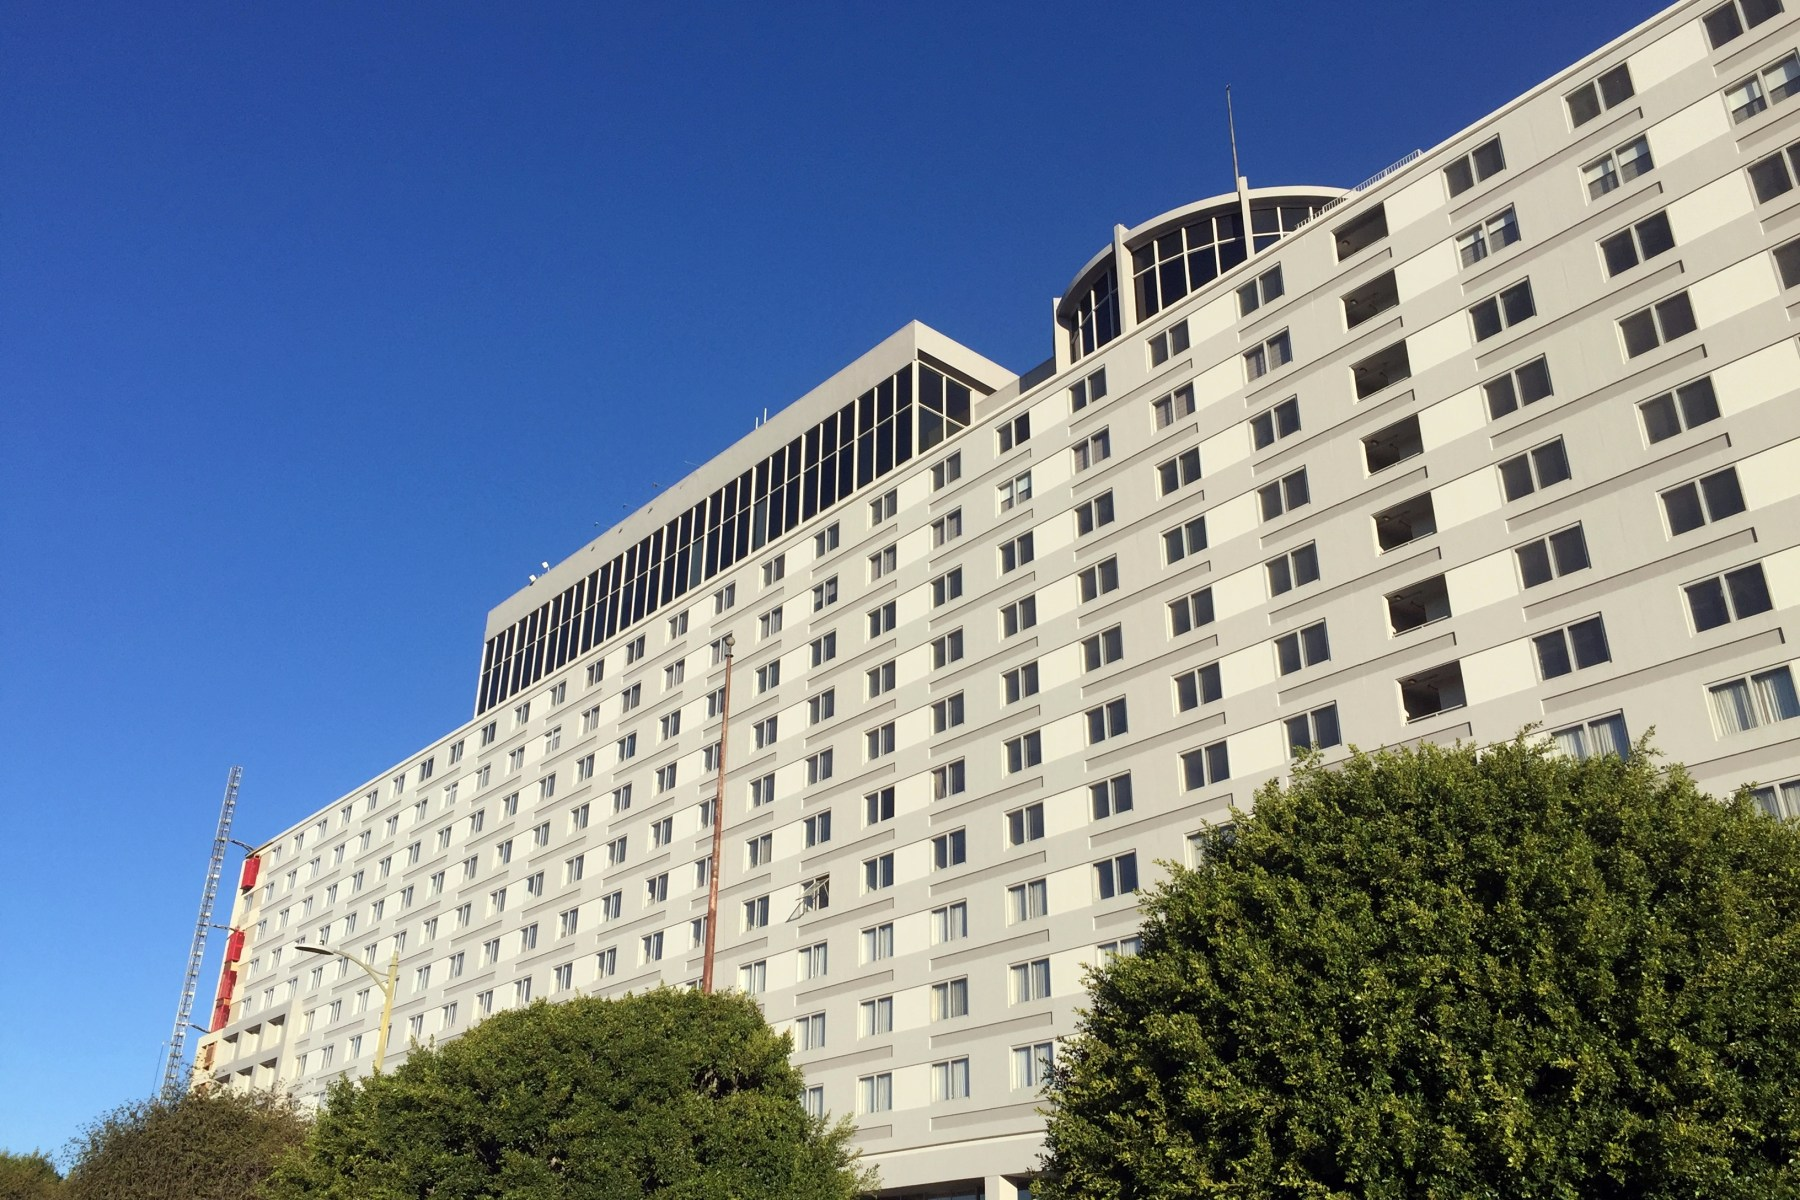 Hotels Los Angeles Hotels  Coupon Code Military Discount 2020